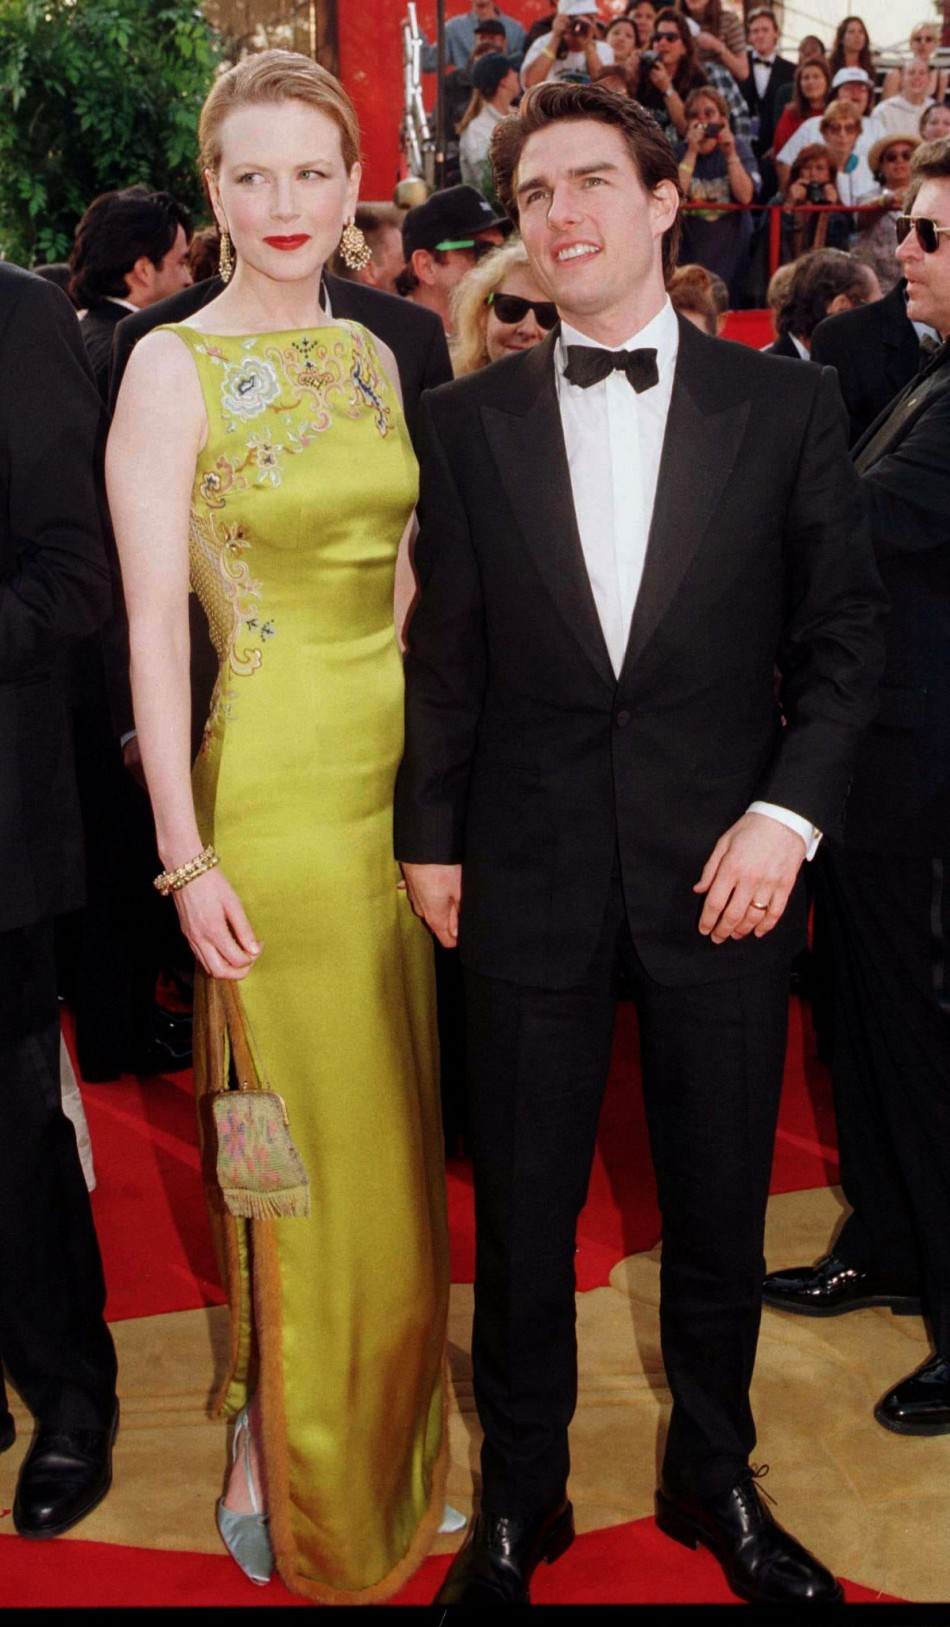 Academy Award nominee for Best Actor Tom Cruise arrives with his wife, actress Nicole Kidman, at the 69th annual Academy Awards March 24. Cruise was nominated for his role in Jerry Maguire. Kidman is wearing a Christian Dior dress.